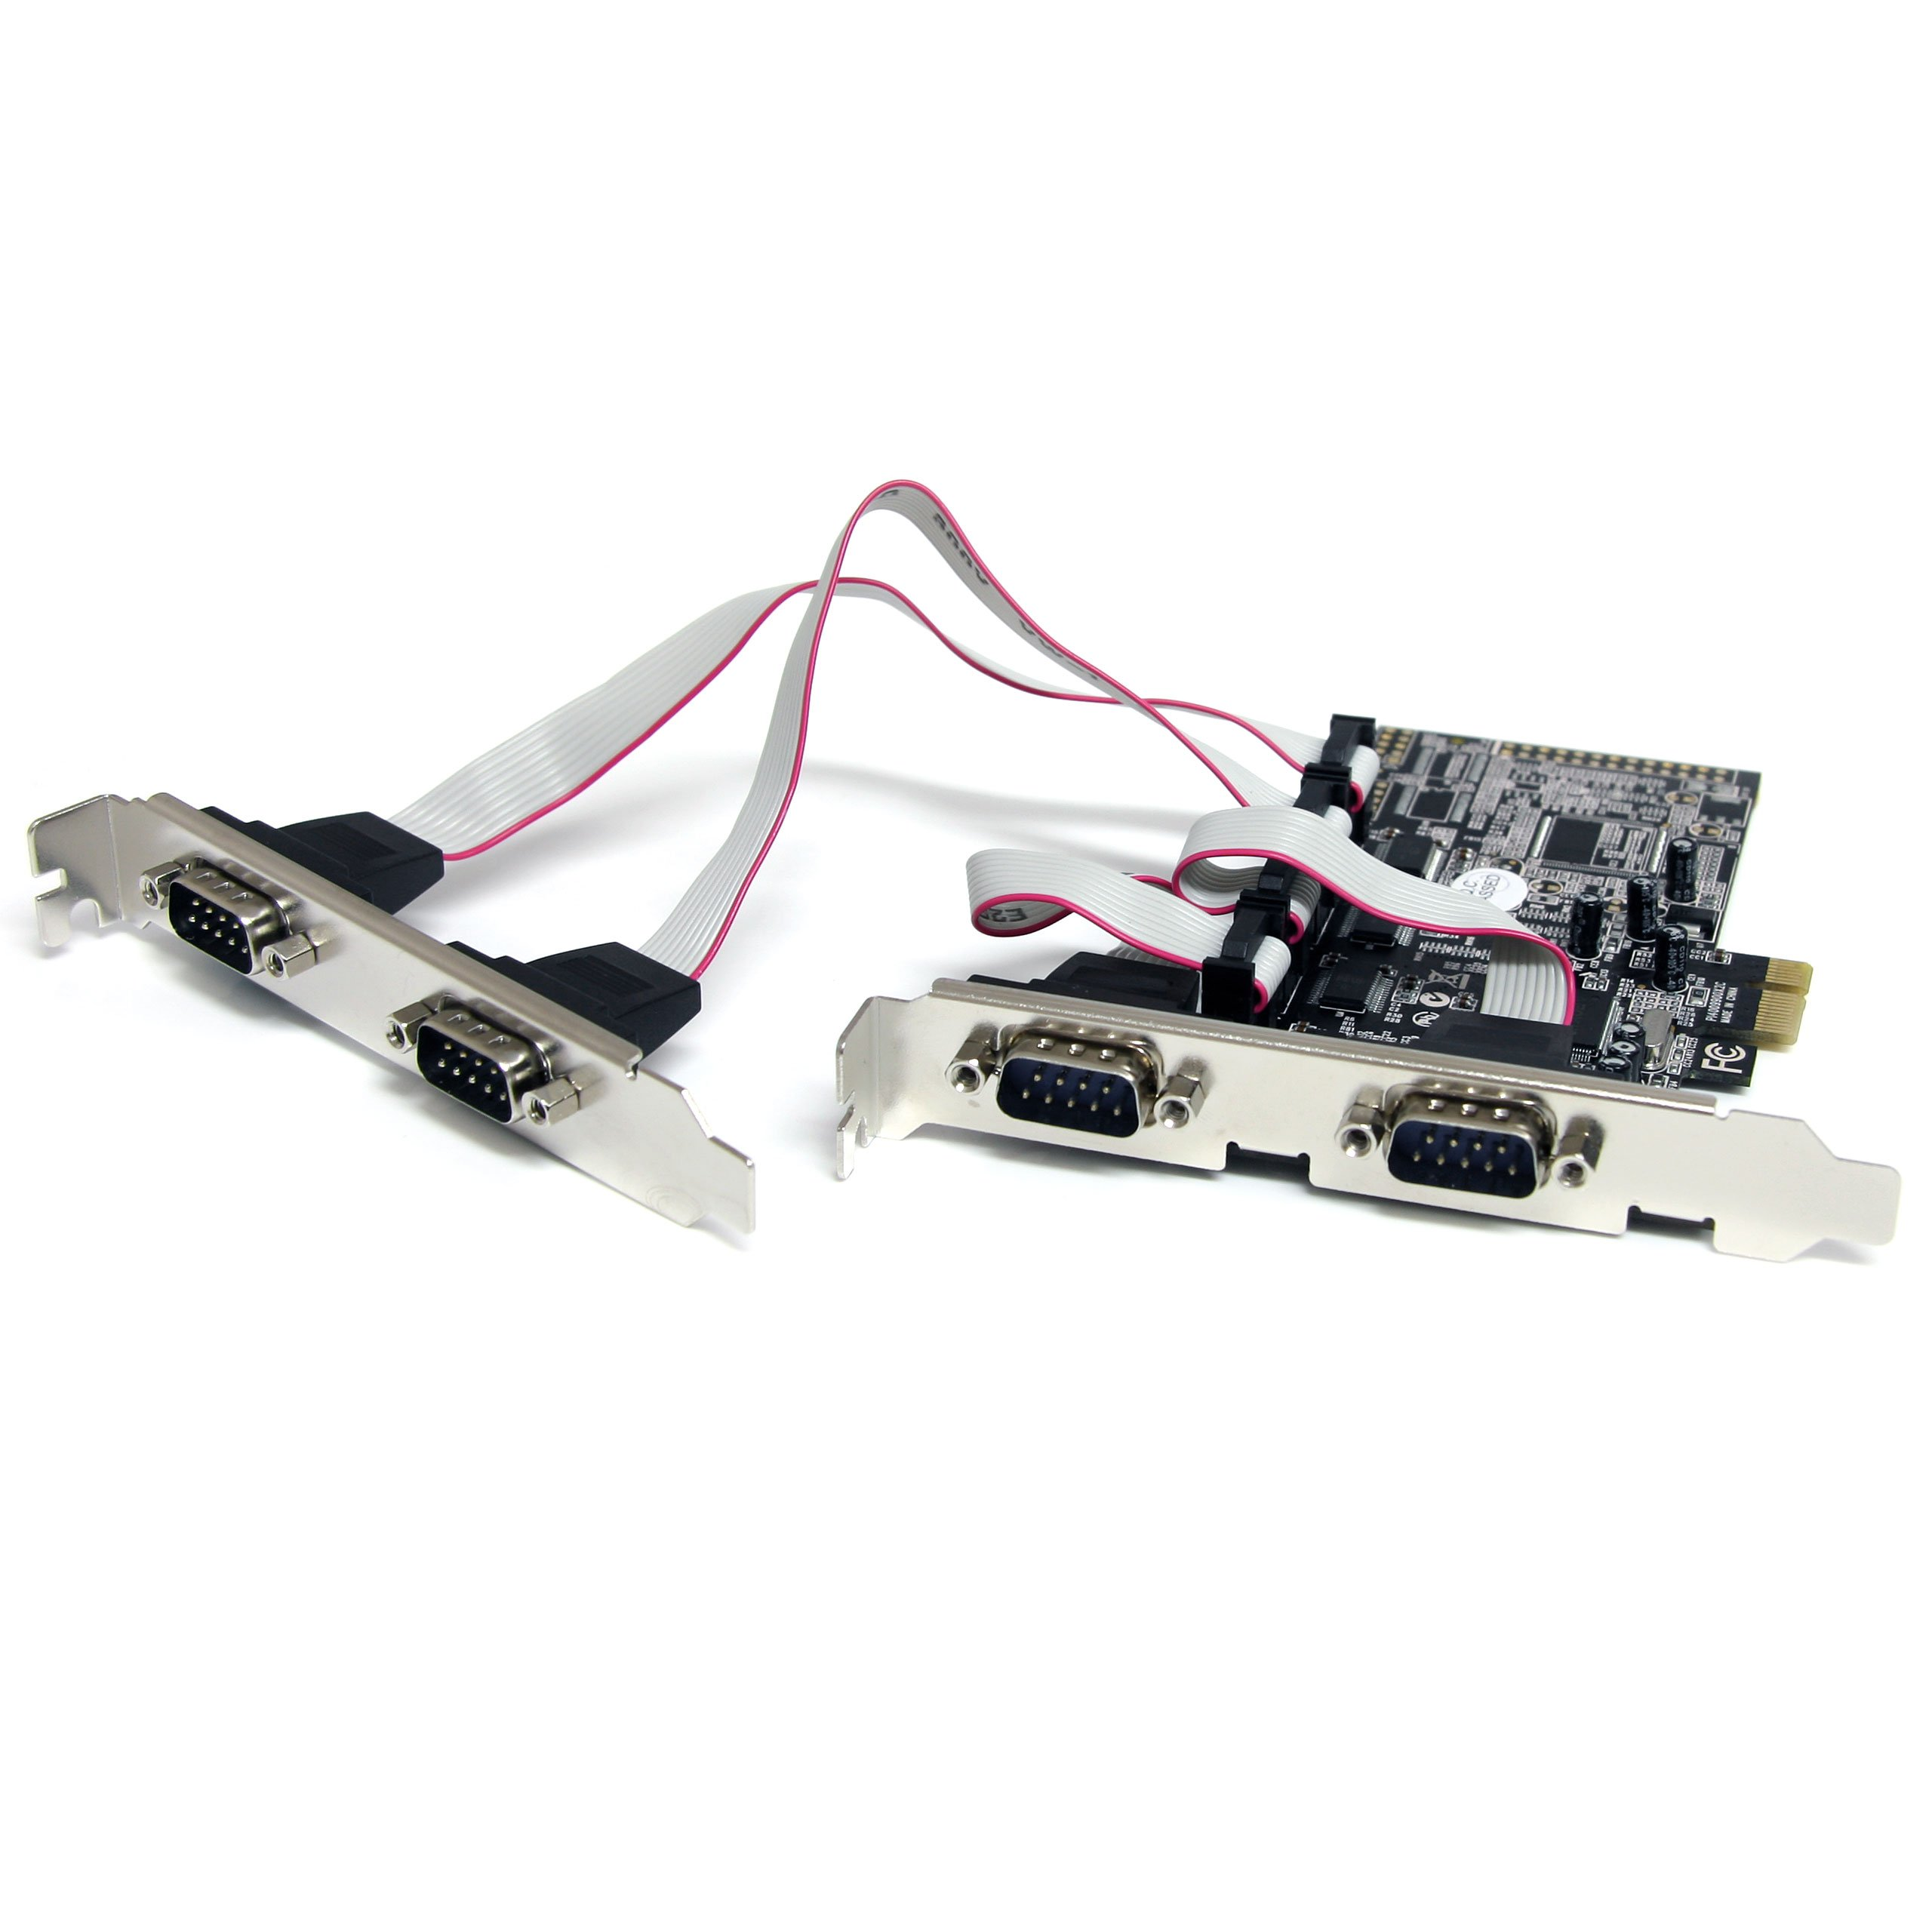 StarTech.com 4-Port Native PCI Express RS232 Serial Adapter Card with 16550 UART (PEX4S553) by StarTech